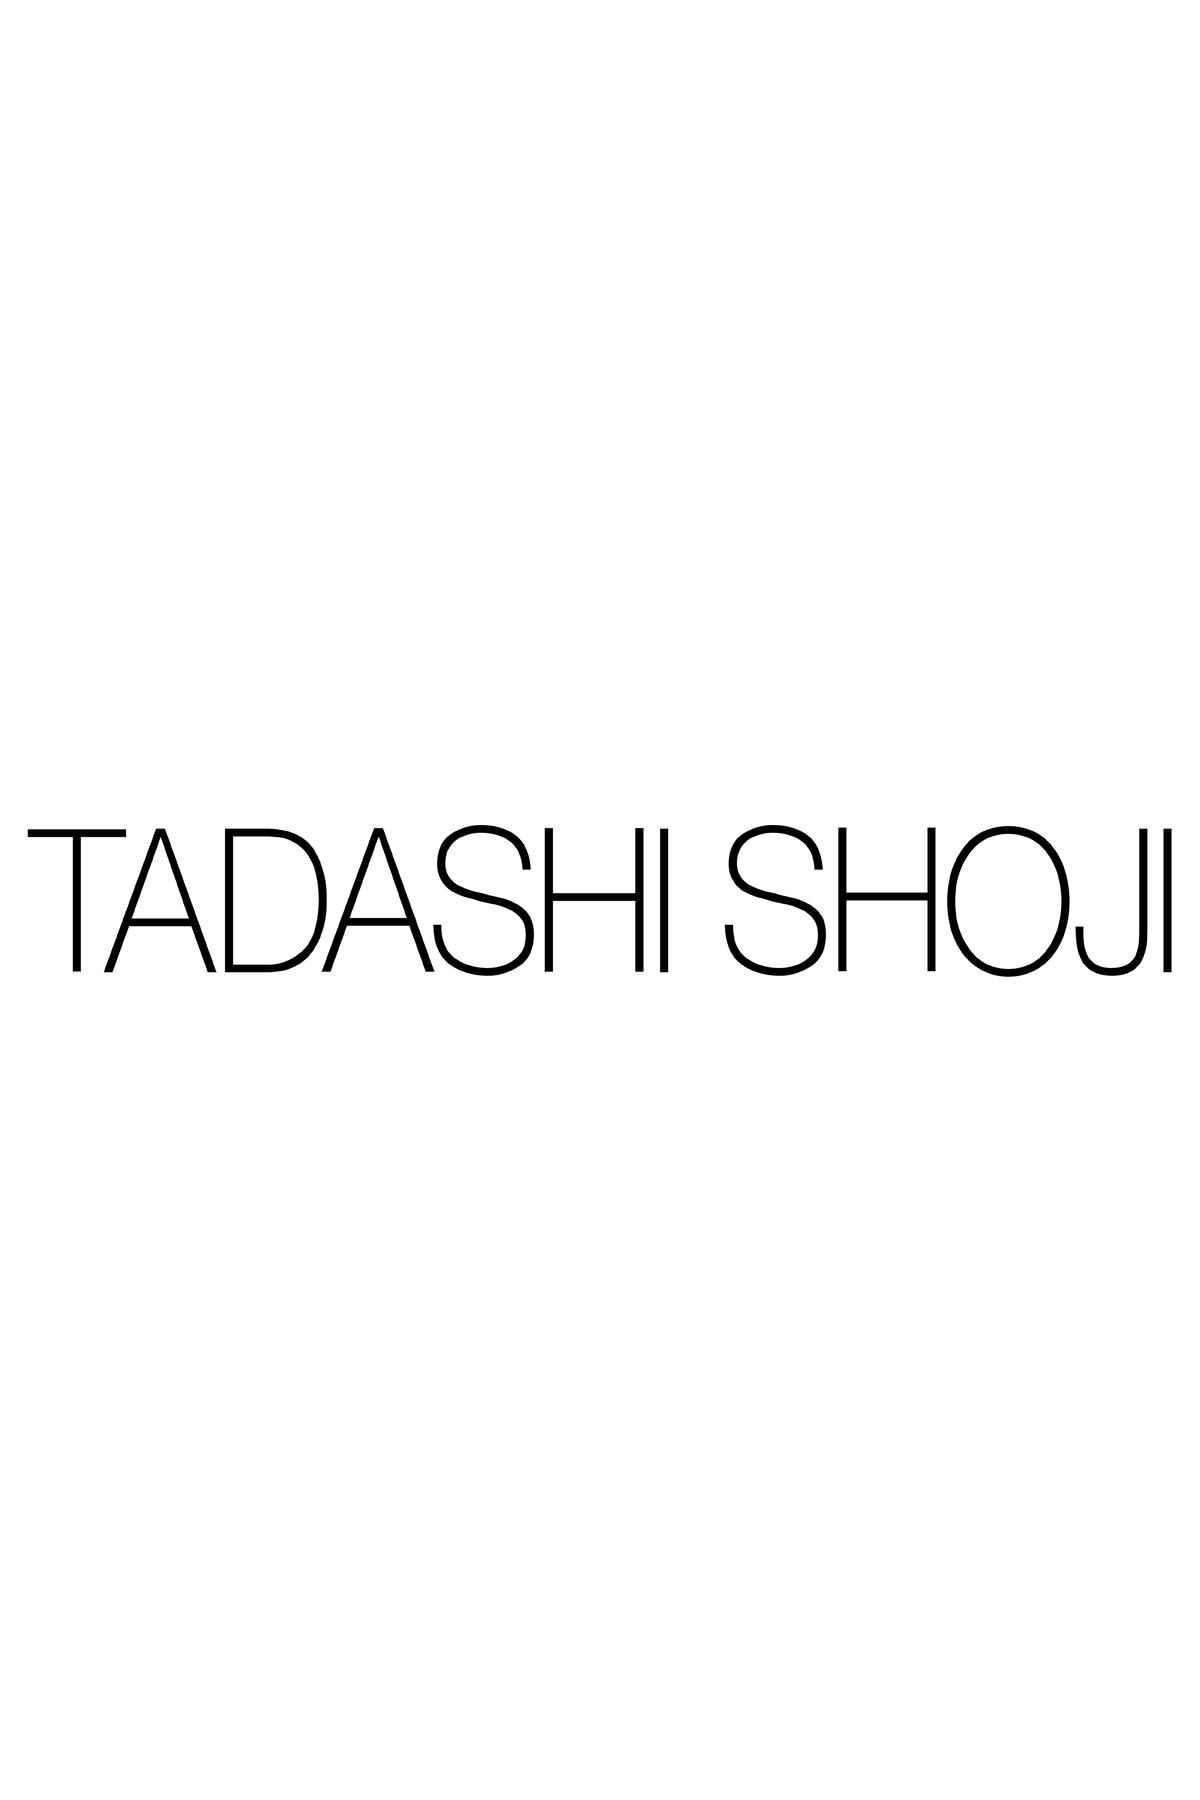 Embroidered Lace Blouson Waist Dress - PLUS SIZE | Tadashi Shoji